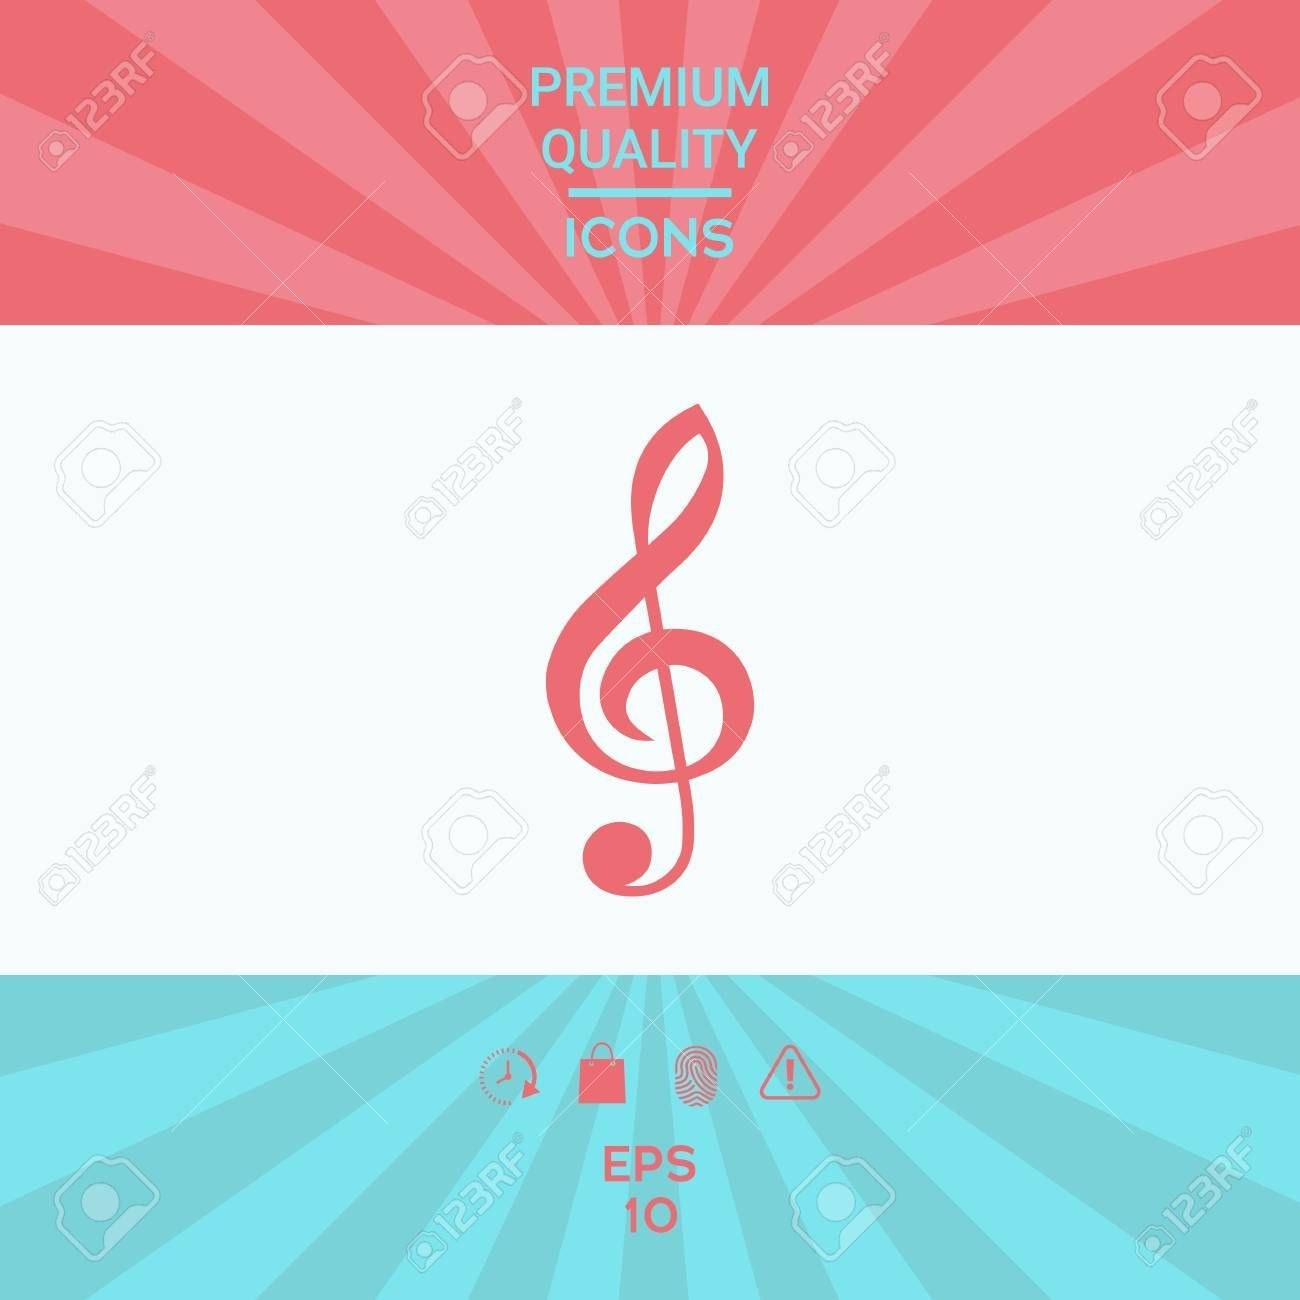 Treble clef icon . Signs and symbols - graphic elements for your design Illustration , #Ad, #icon, #Signs, #Treble, #clef, #symbols #trebleclef Treble clef icon . Signs and symbols - graphic elements for your design Illustration , #Ad, #icon, #Signs, #Treble, #clef, #symbols #trebleclef